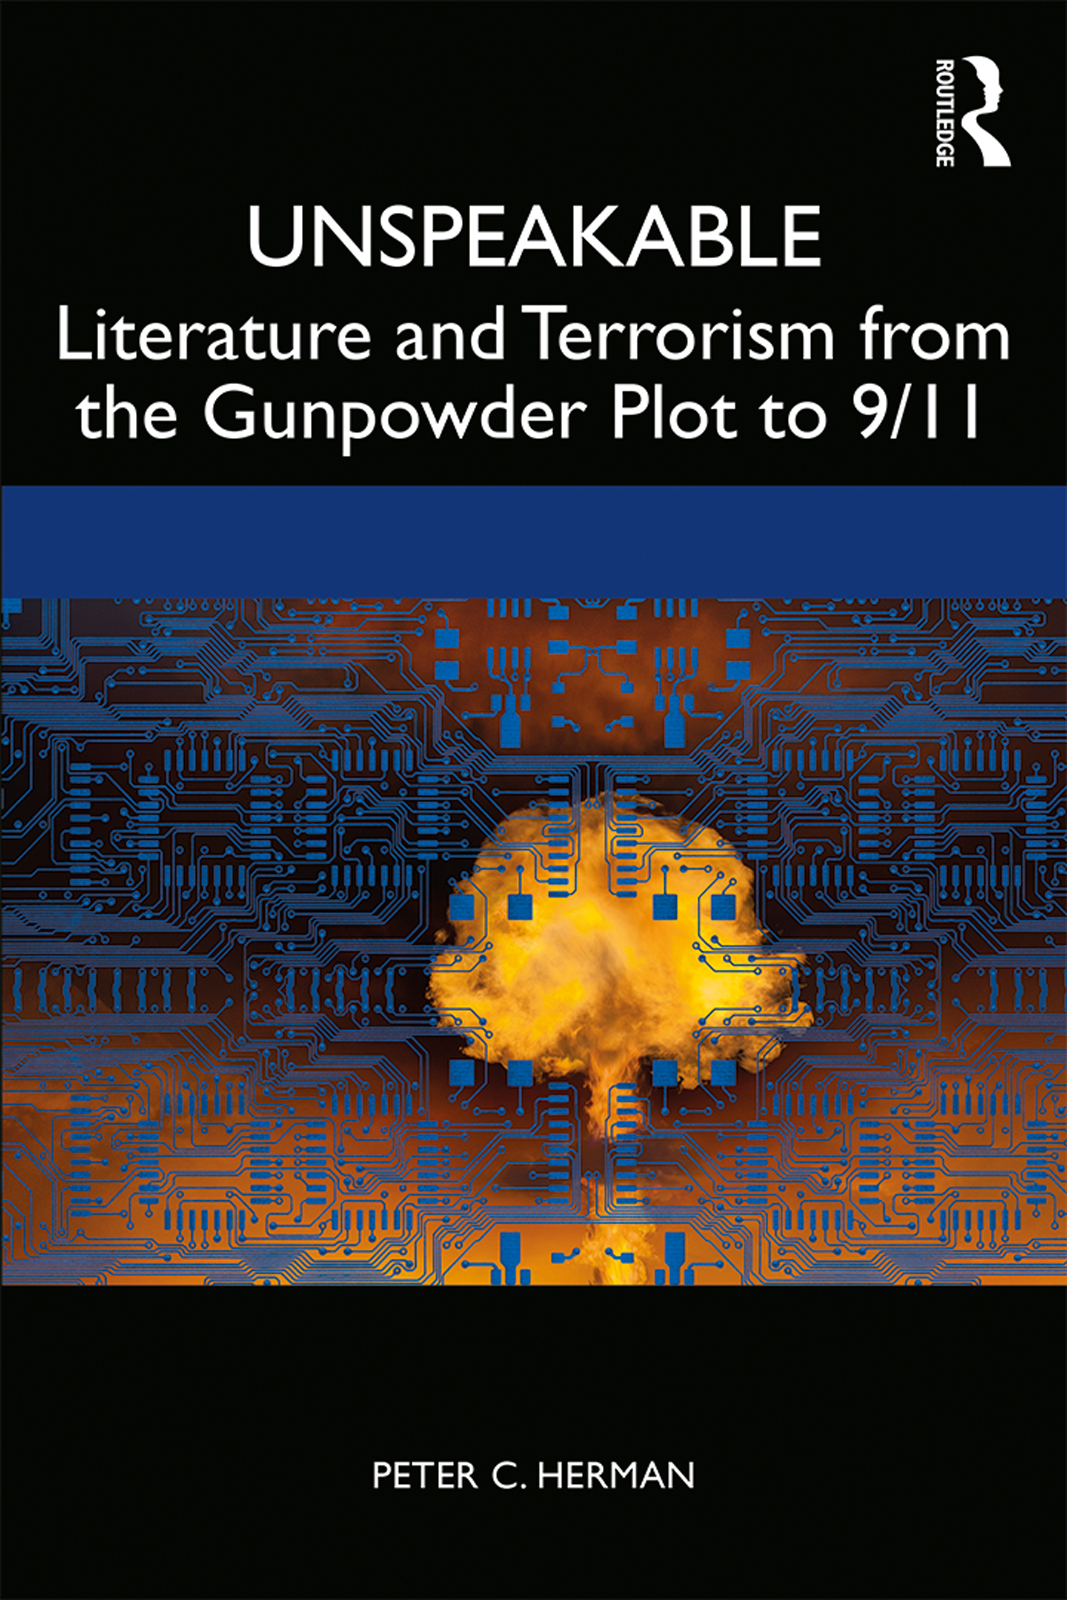 Unspeakable: Literature and Terrorism from the Gunpowder Plot to 9/11 book cover